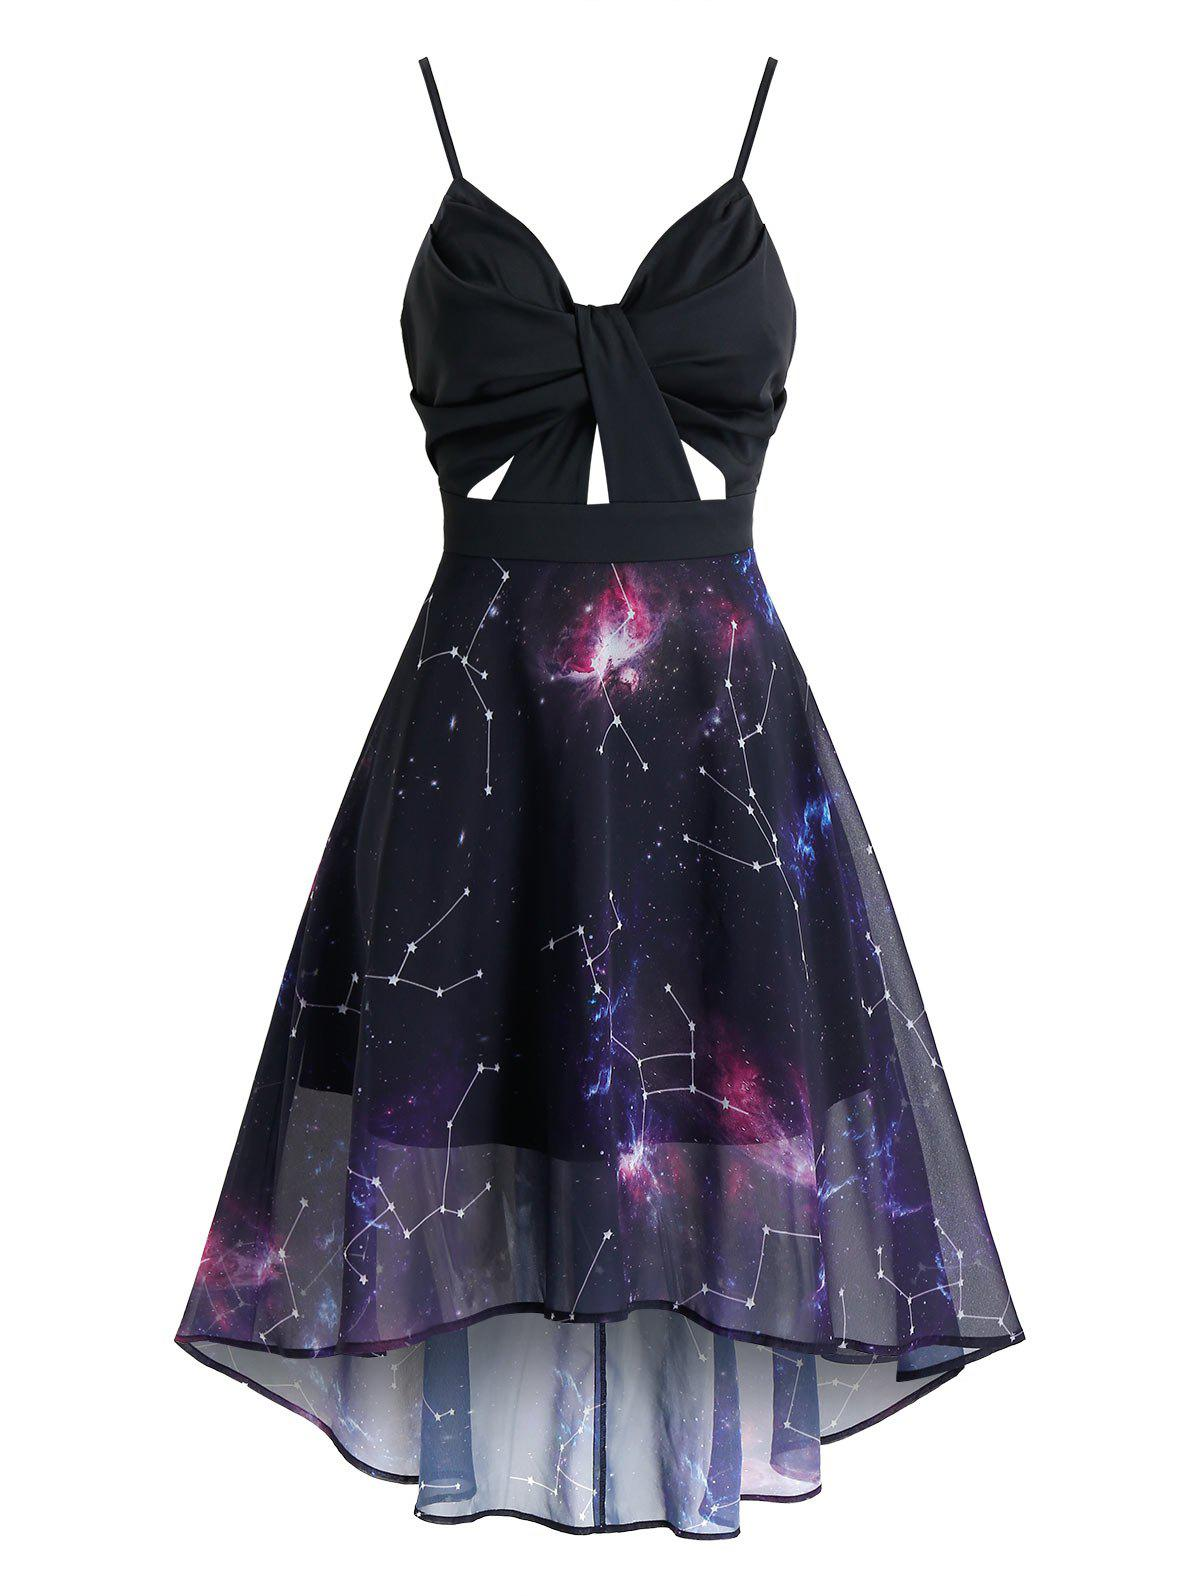 Fashion Ruched Starry Print Overlay Mesh High Low Dress